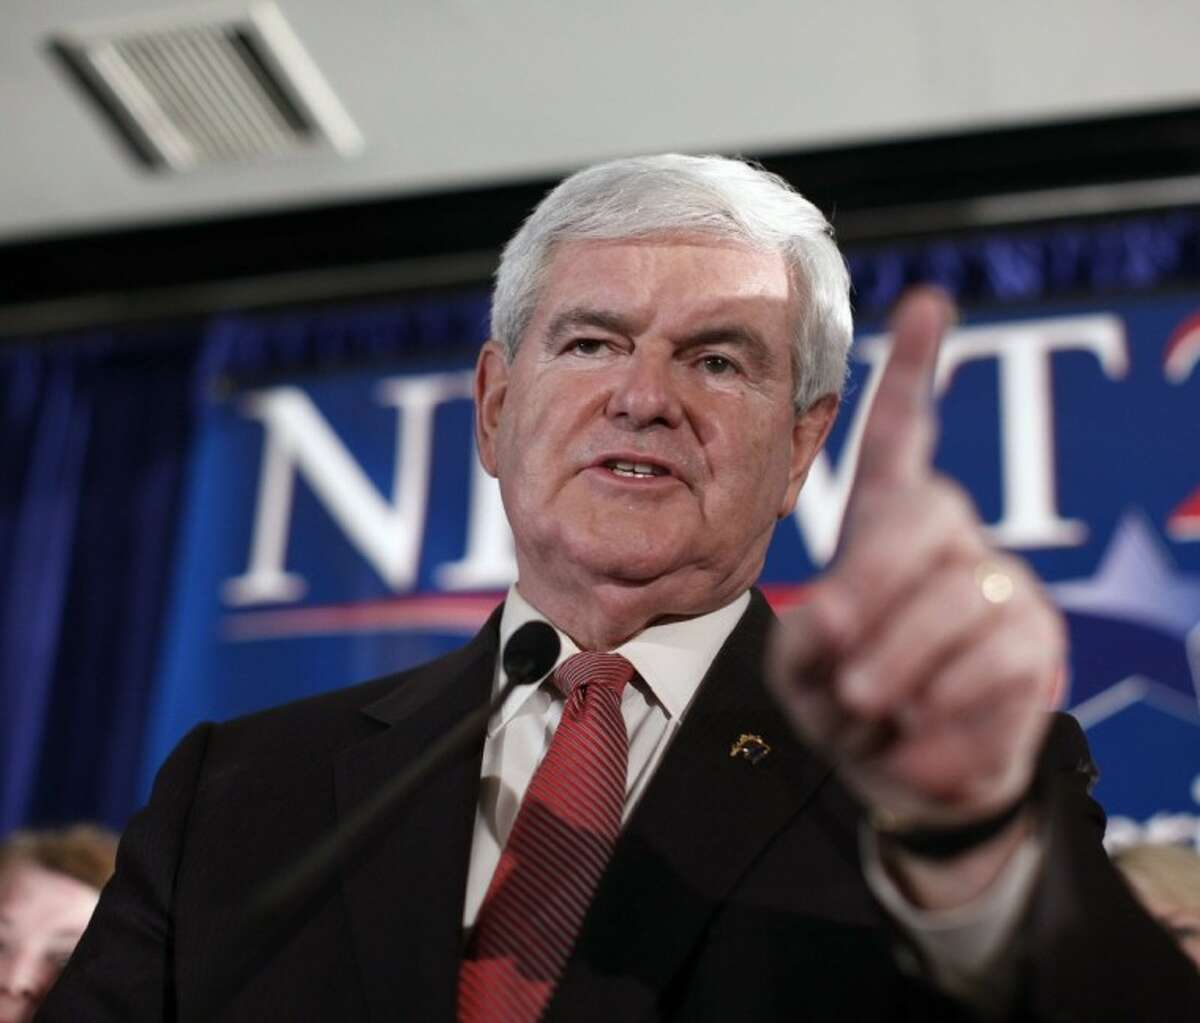 Republican presidential candidate and former House Speaker Newt Gingrich speaks during aSouth Carolina Republican presidential primary night rally, Saturday, Jan. 21, 2012, in Columbia, S.C. (AP Photo/Matt Rourke)